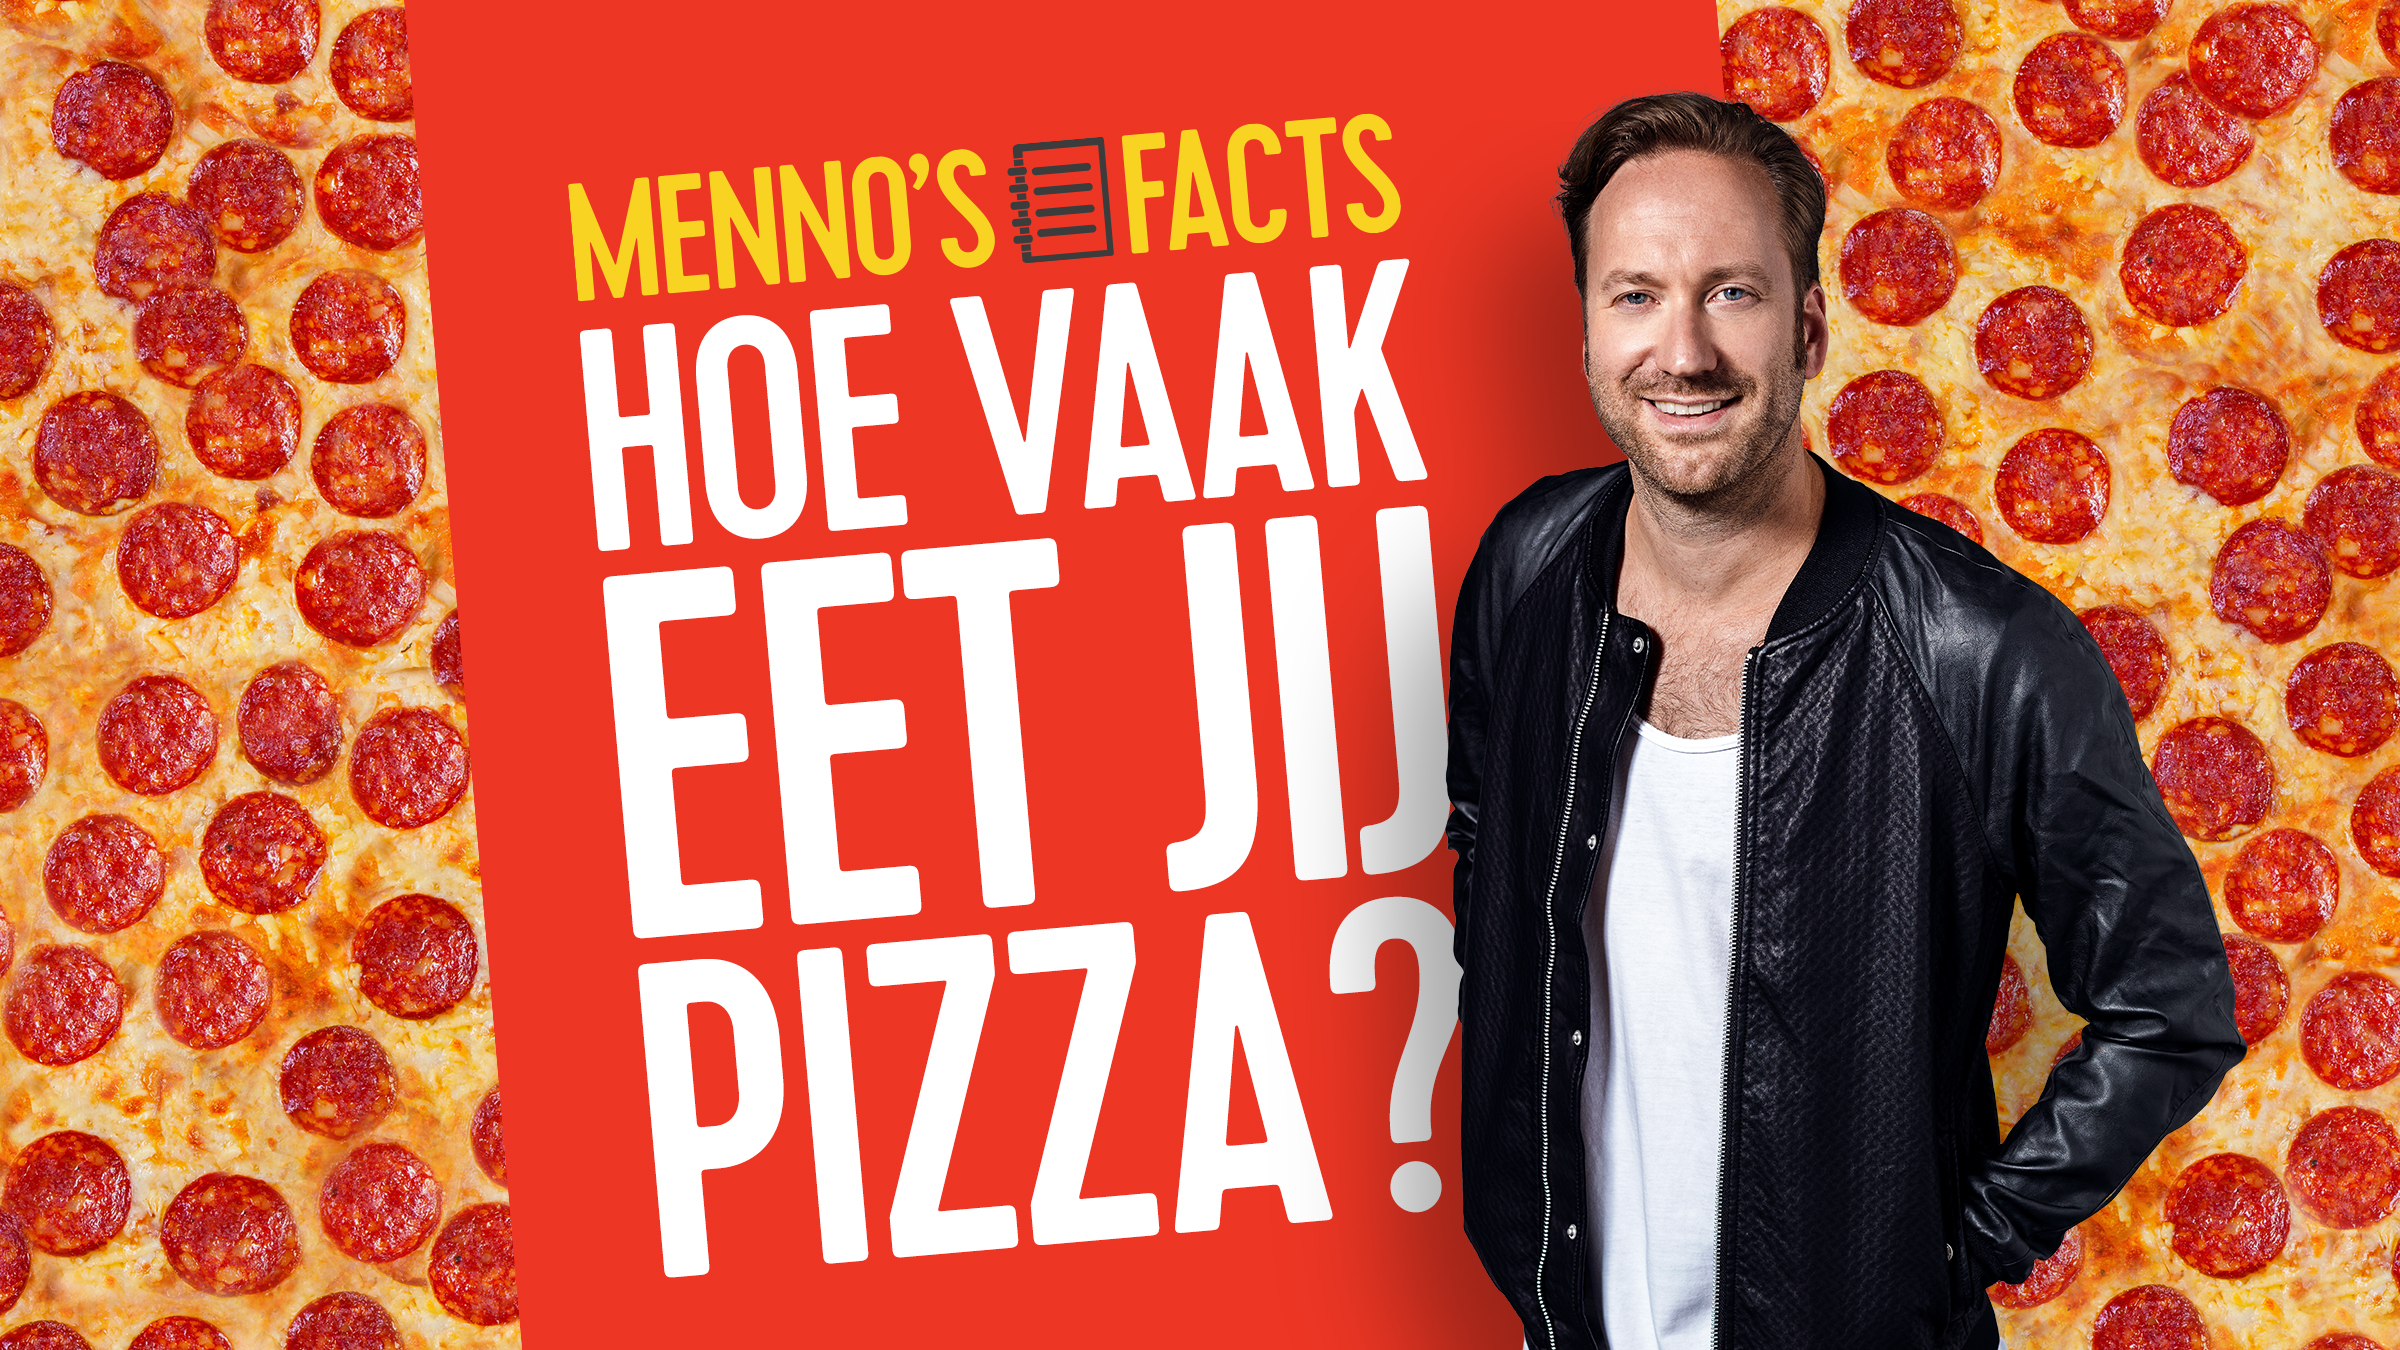 Pizza teaser basis mennosfacts17